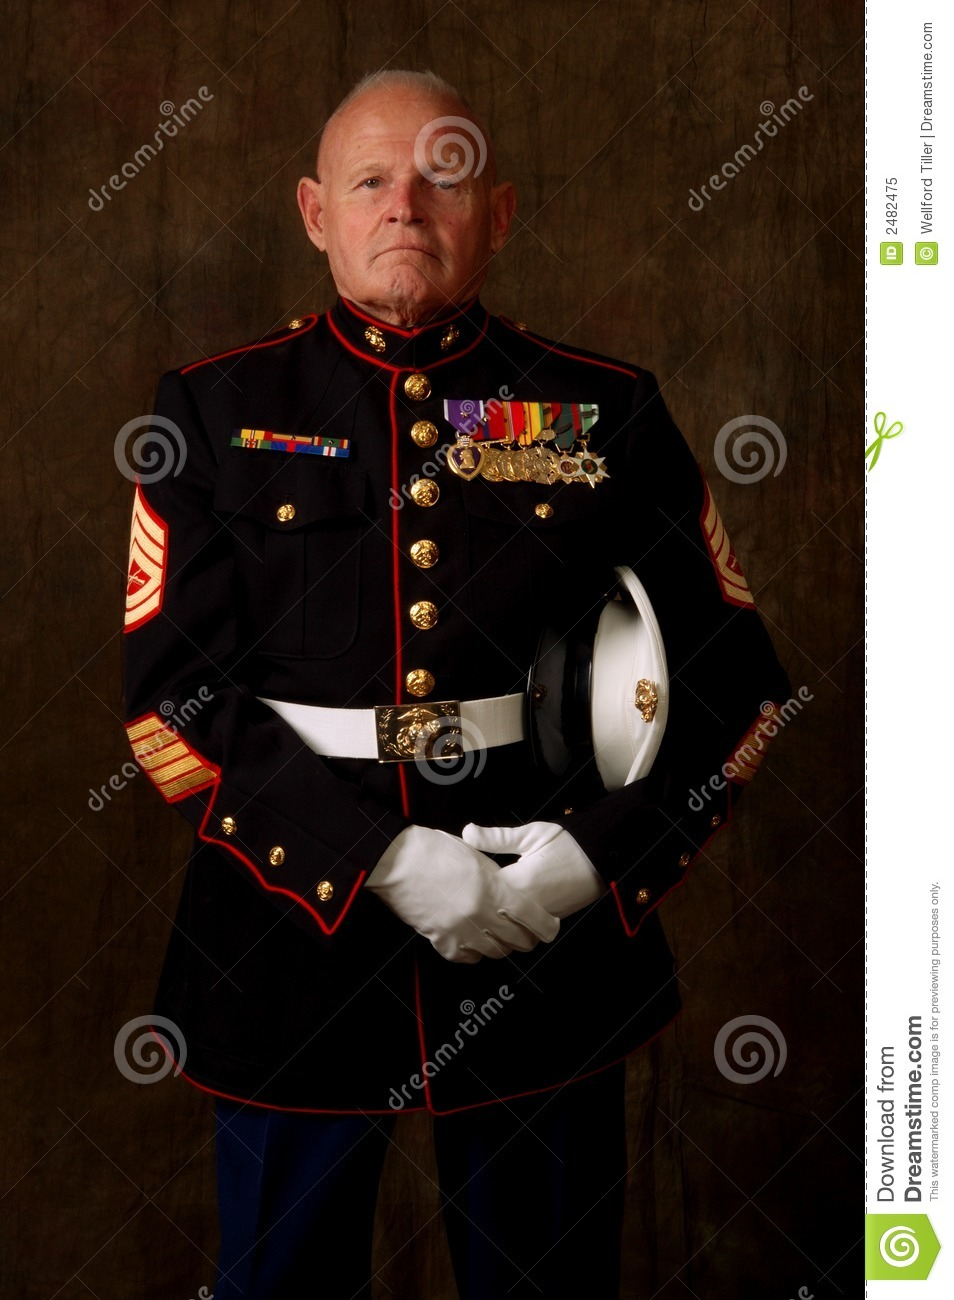 Vertical image of an older Marine Veteran in full dress uniform.